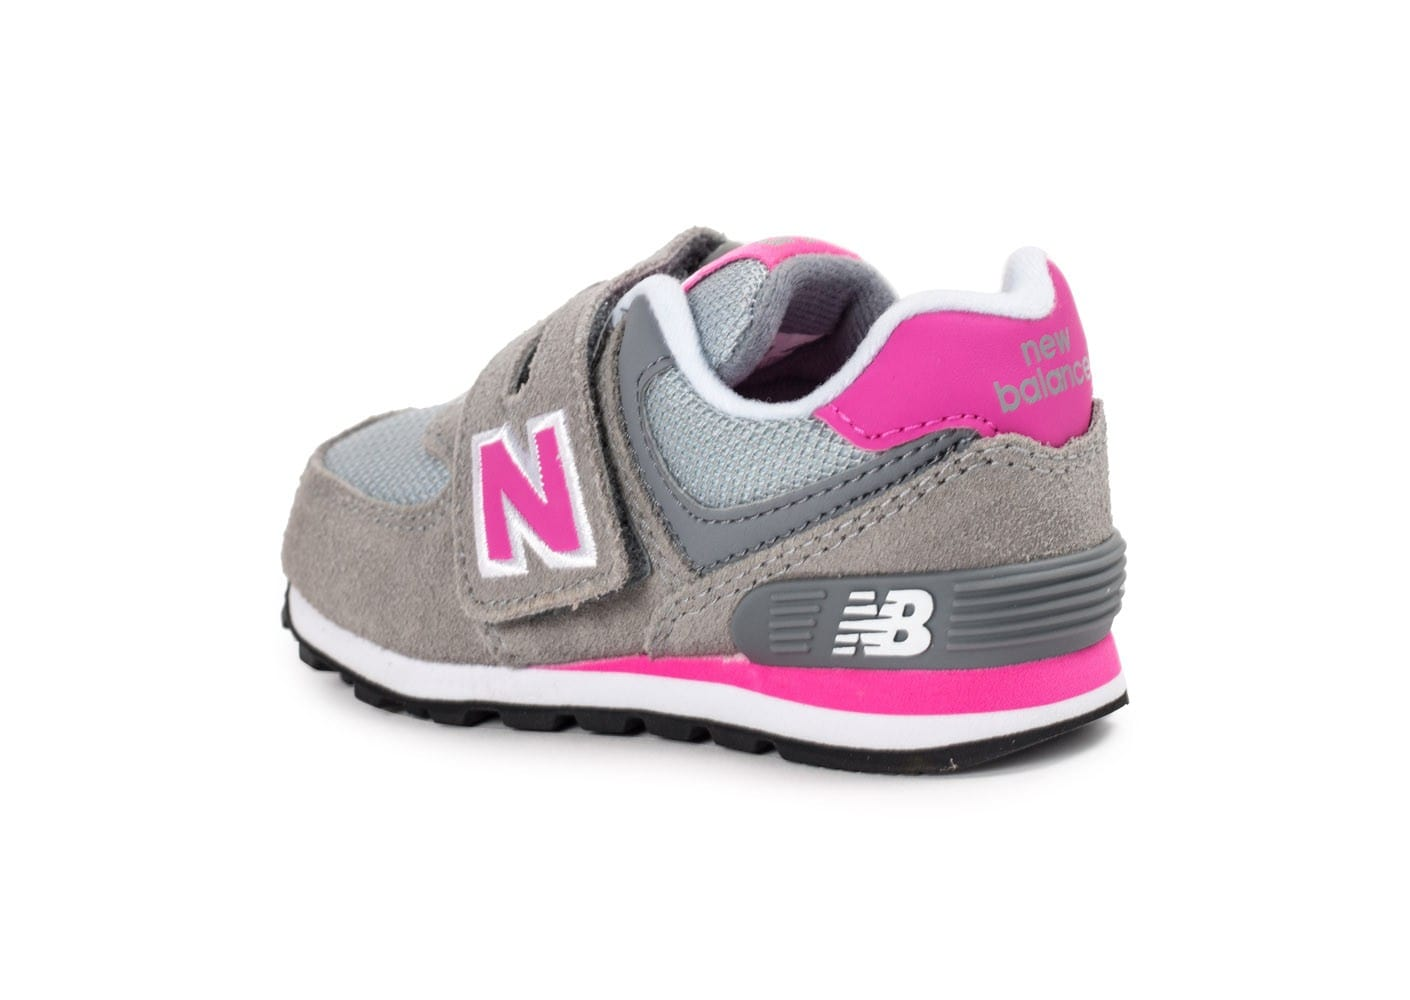 new balance kv574 b b grise et rose chaussures toutes les baskets sold es chausport. Black Bedroom Furniture Sets. Home Design Ideas